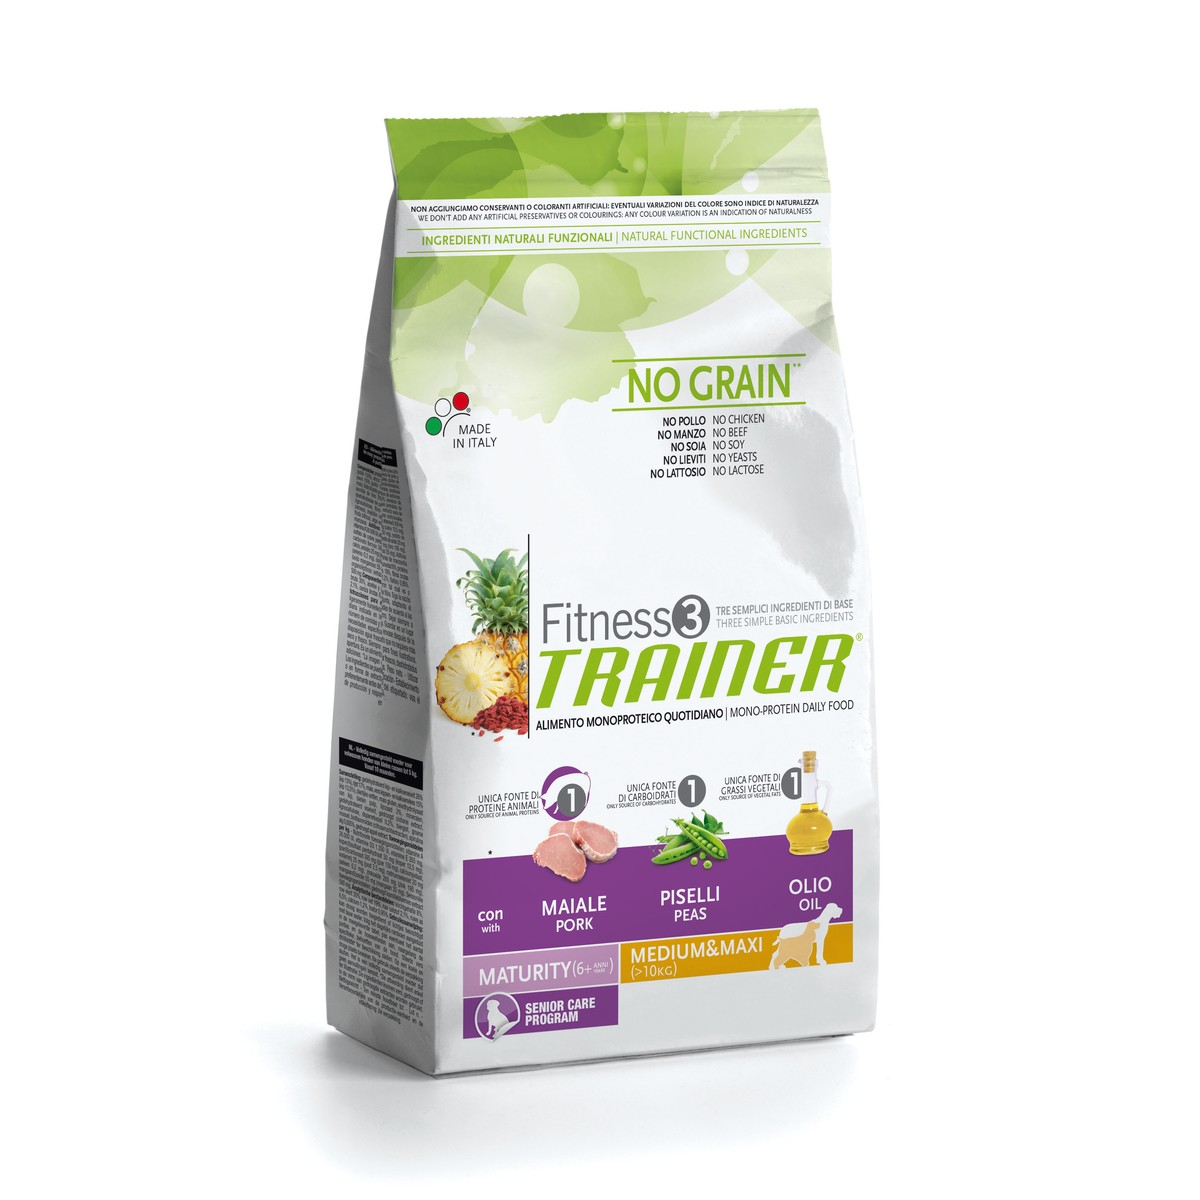 Trainer FITNESS 3 Maturity P&P MM 12.5kg